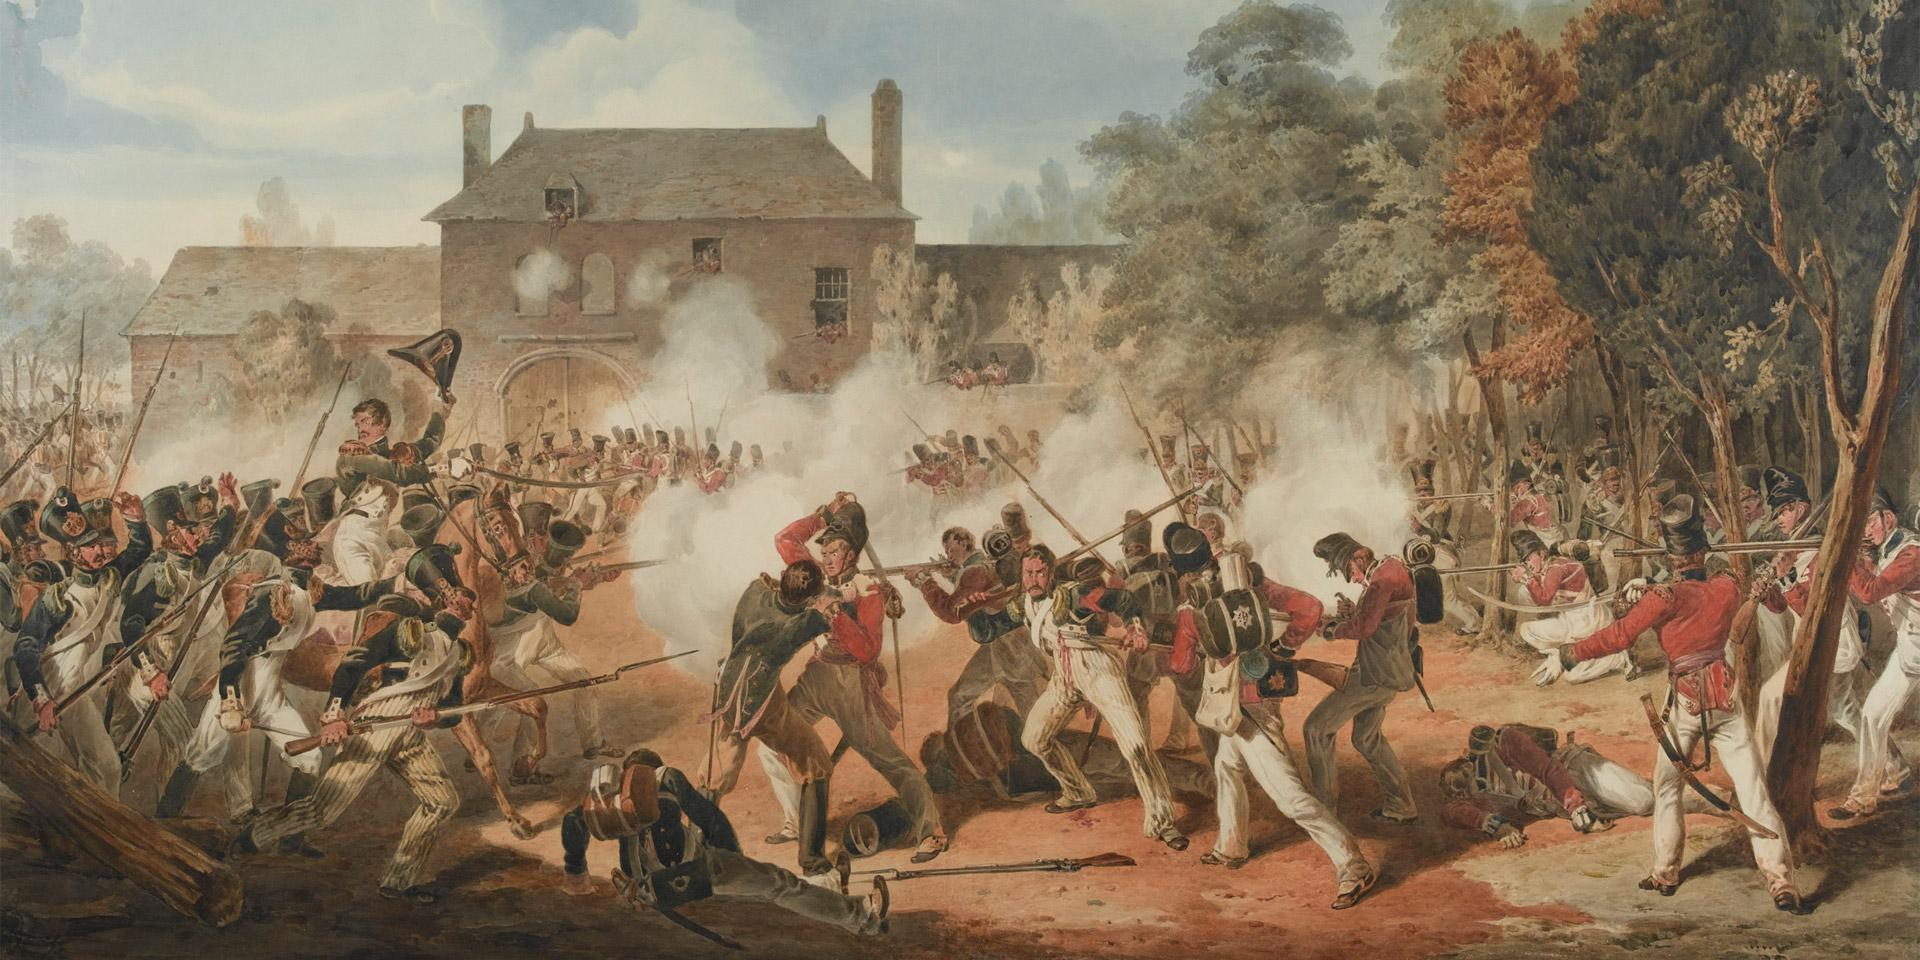 Defence of the Chateau de Hougoumont during the Battle of Waterloo, 1815